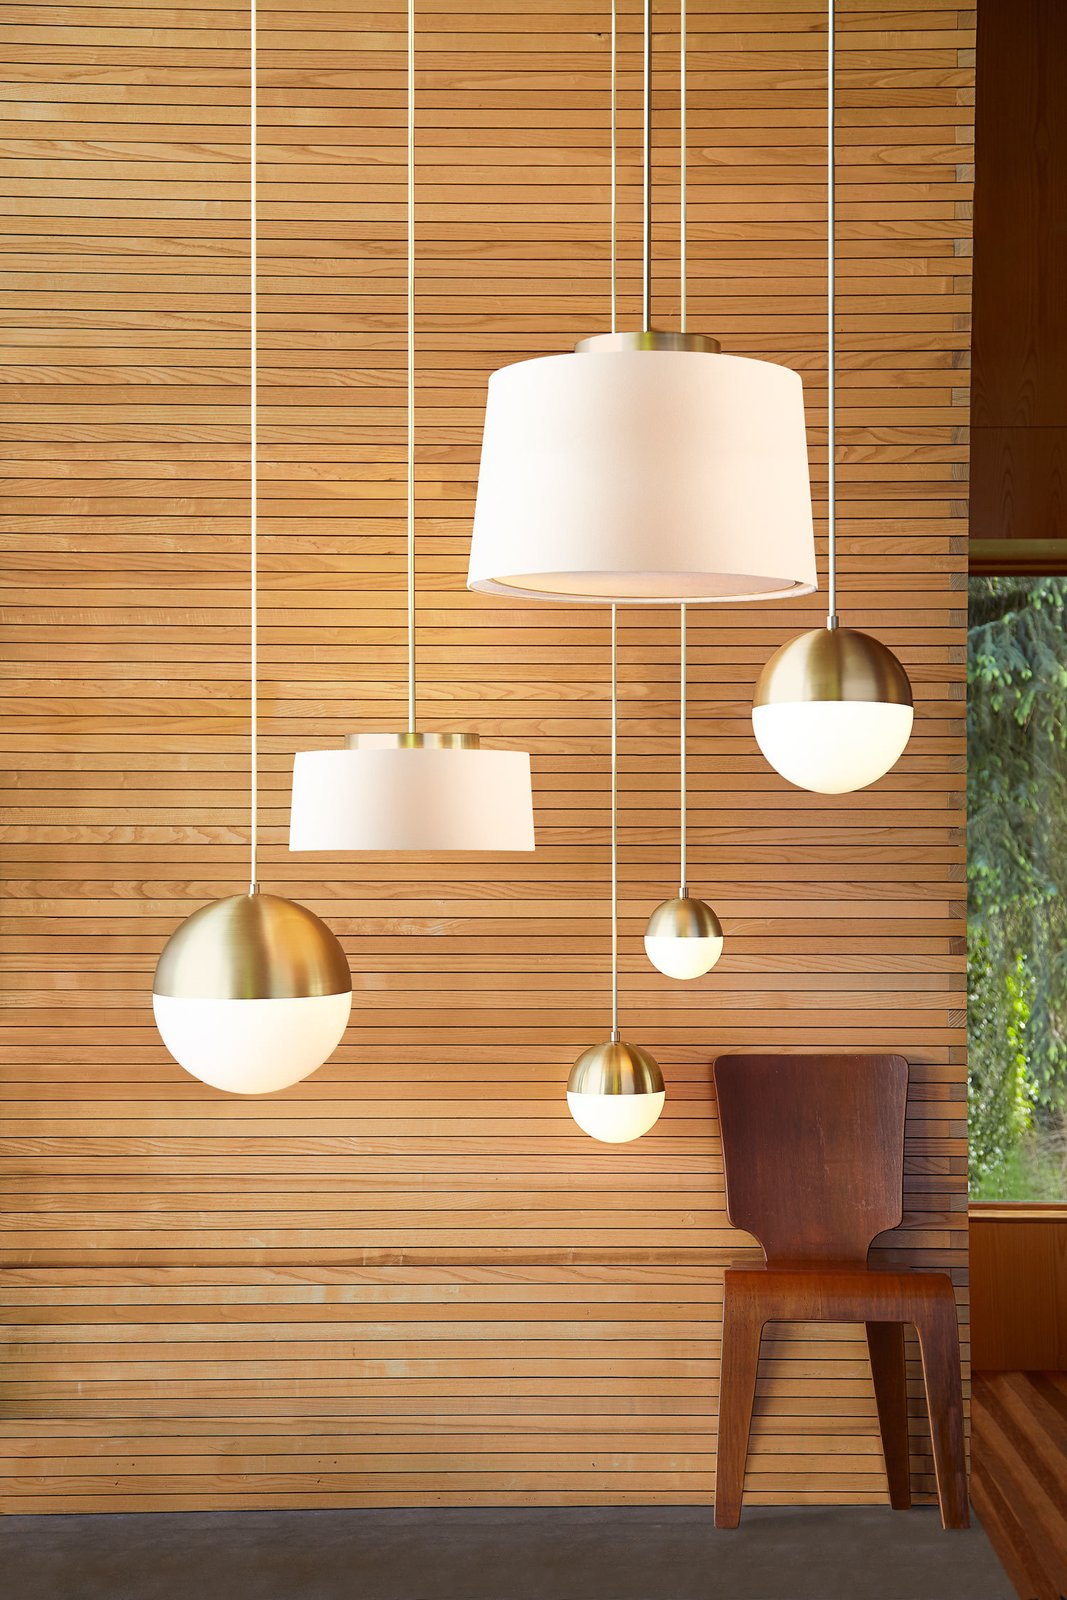 The collection combines influences from modernism and the Arts and Crafts movement. The Cedar & Moss pendants with a brushed satin finish are shown here.